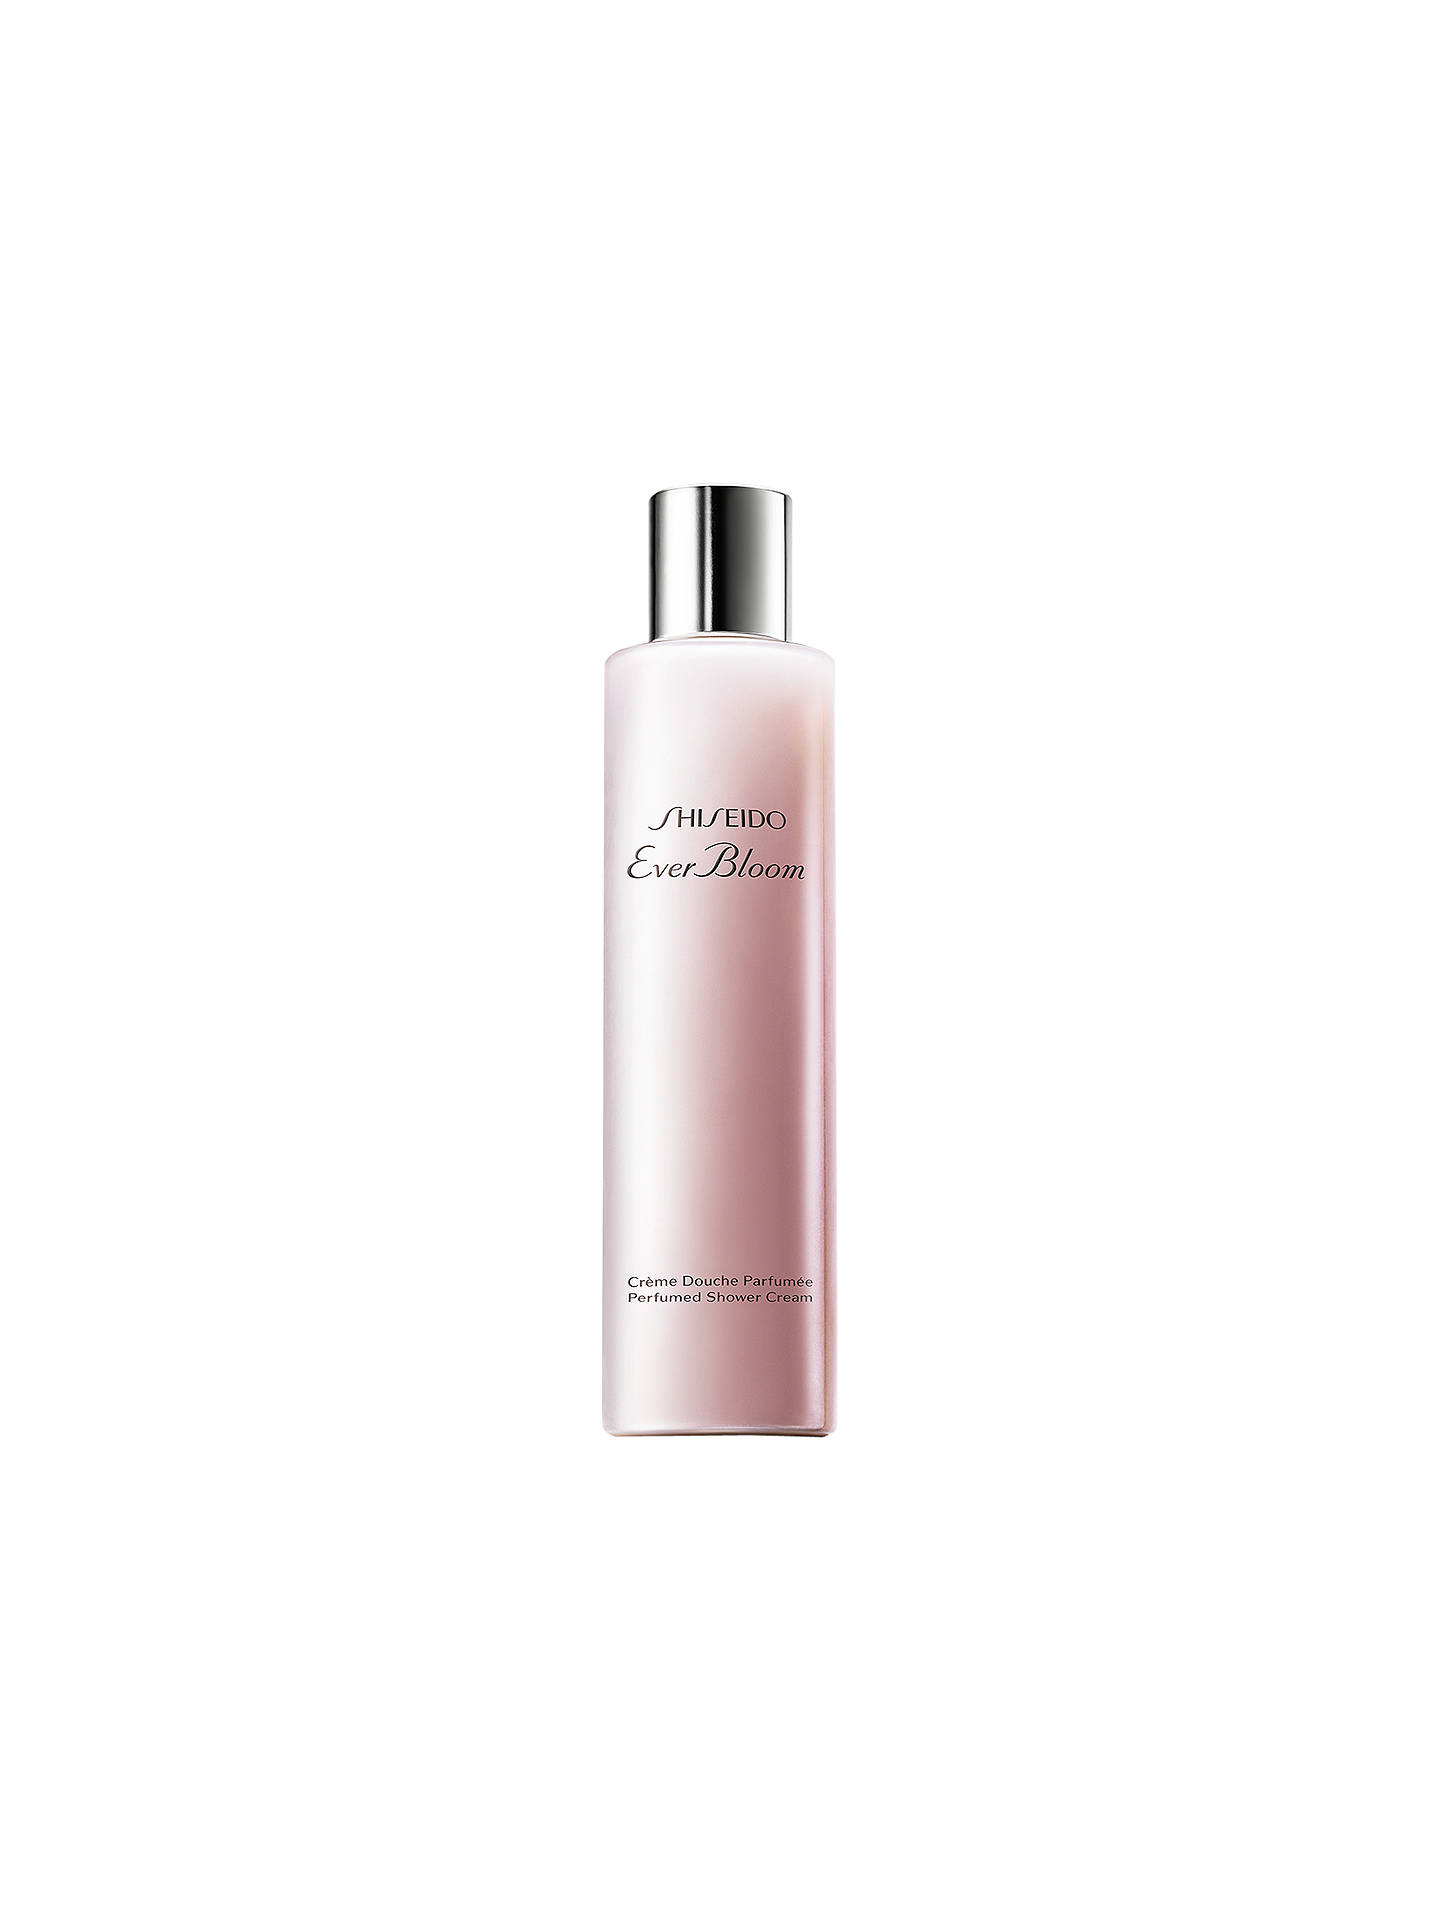 Buy Shiseido Ever Bloom Perfumed Shower Cream, 200ml Online at johnlewis.com